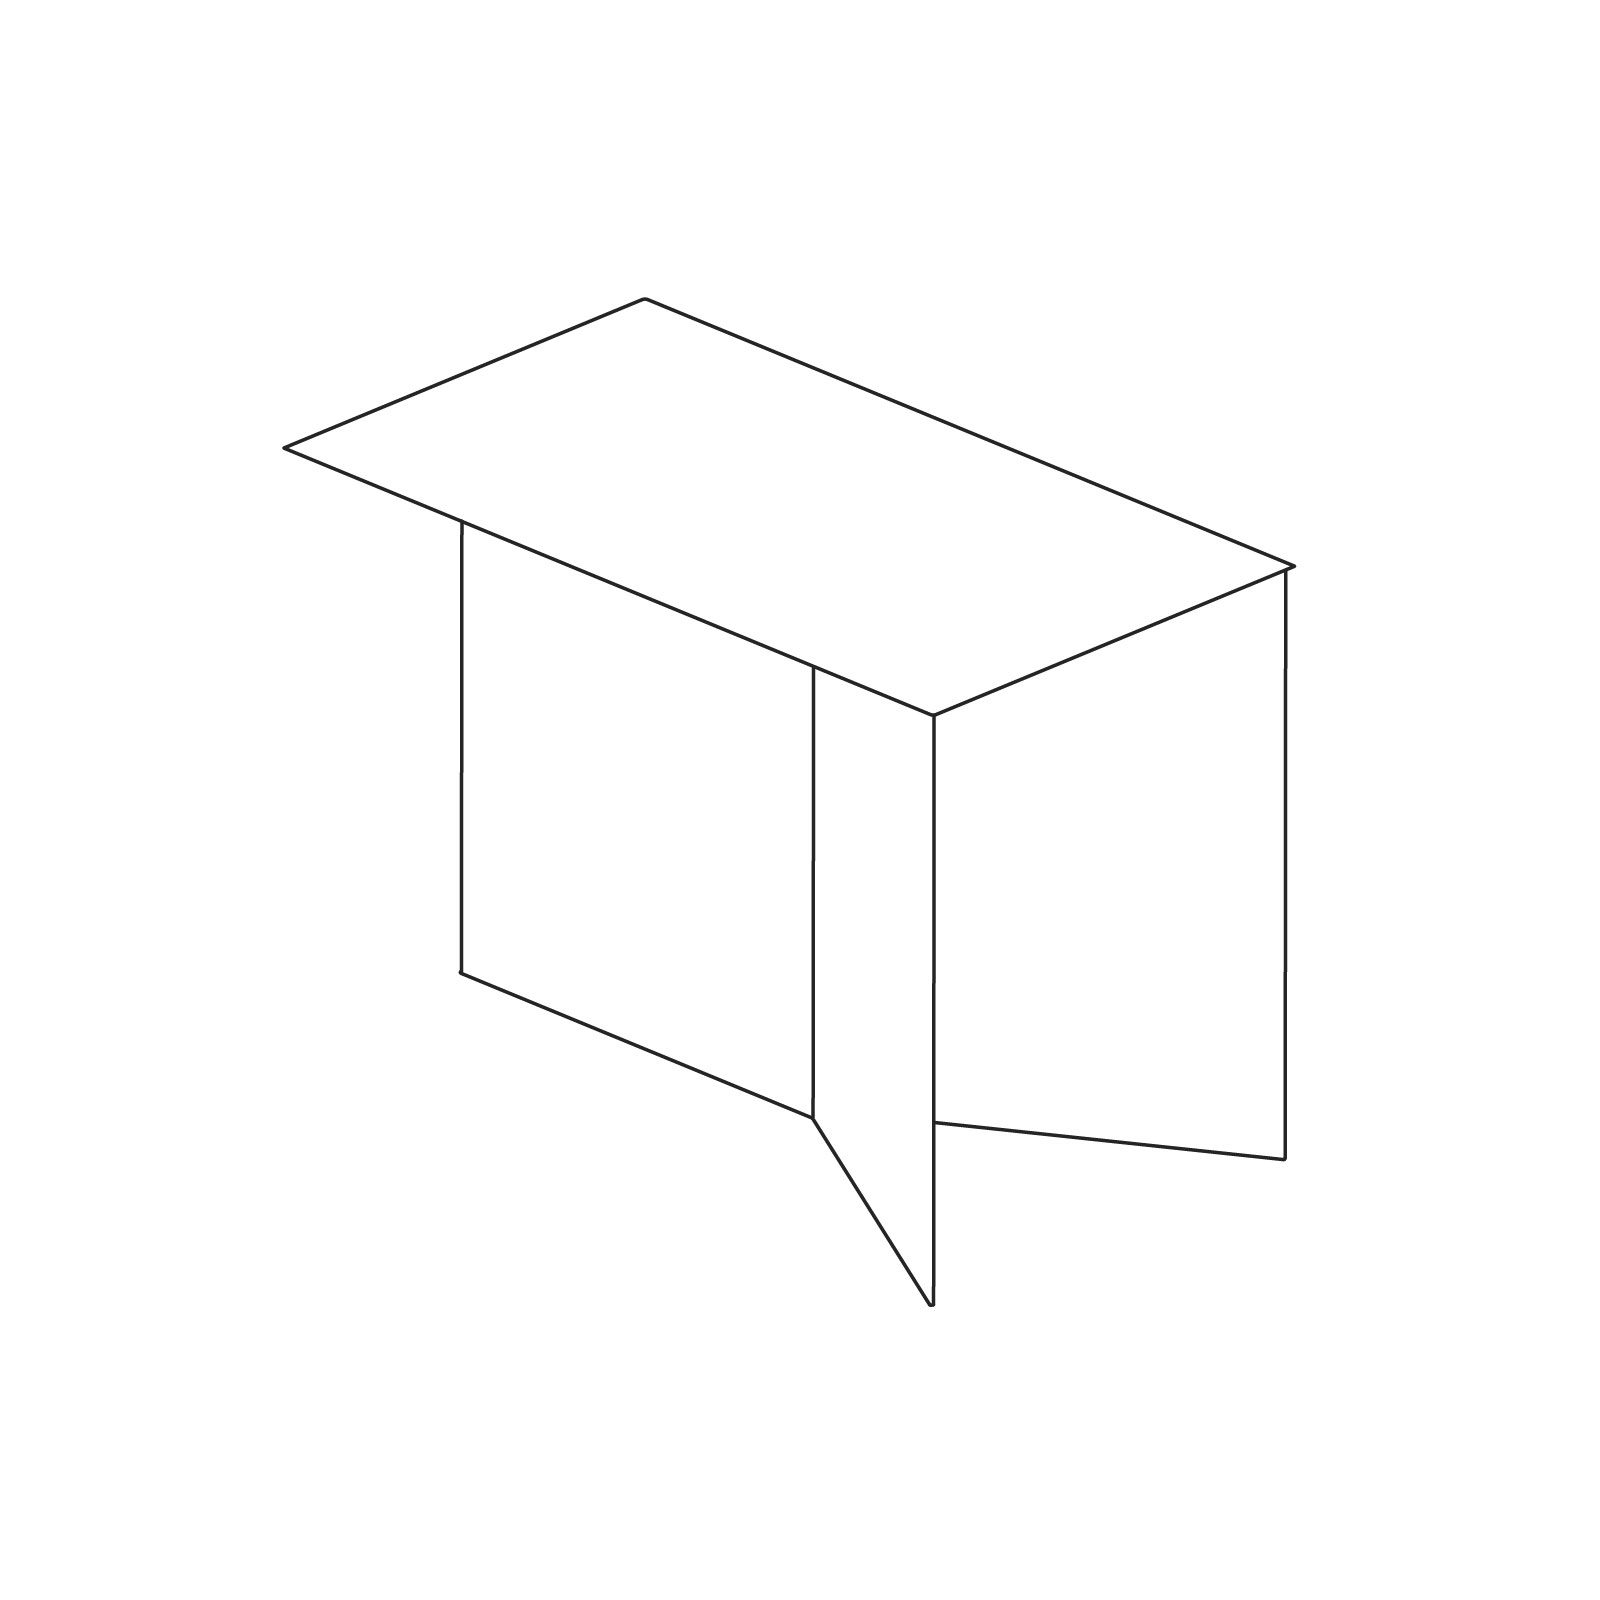 A line drawing of Slit Table–Oblong.